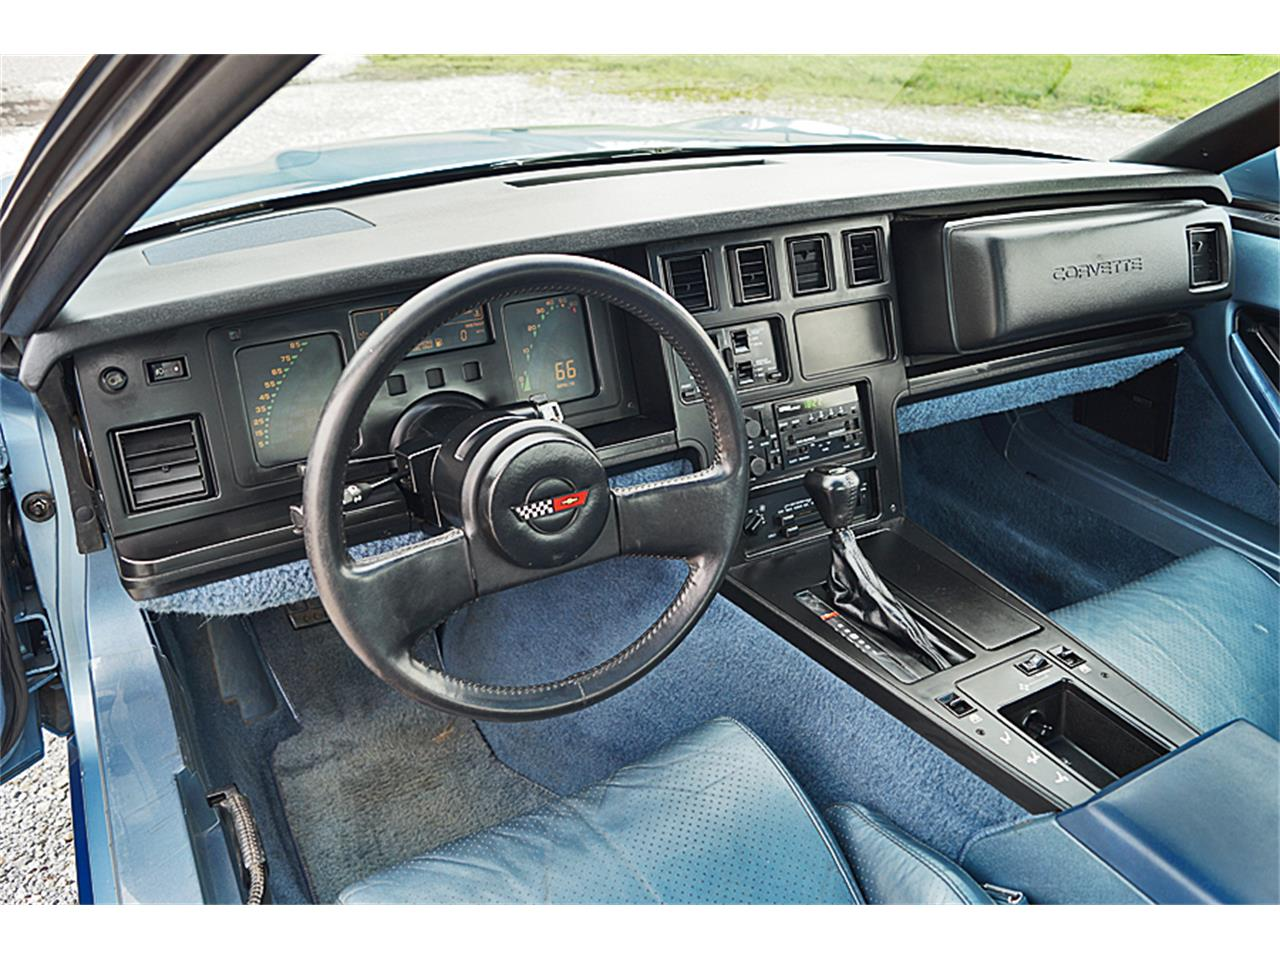 Large Picture of '85 Chevrolet Corvette - $12,900.00 - LFWO